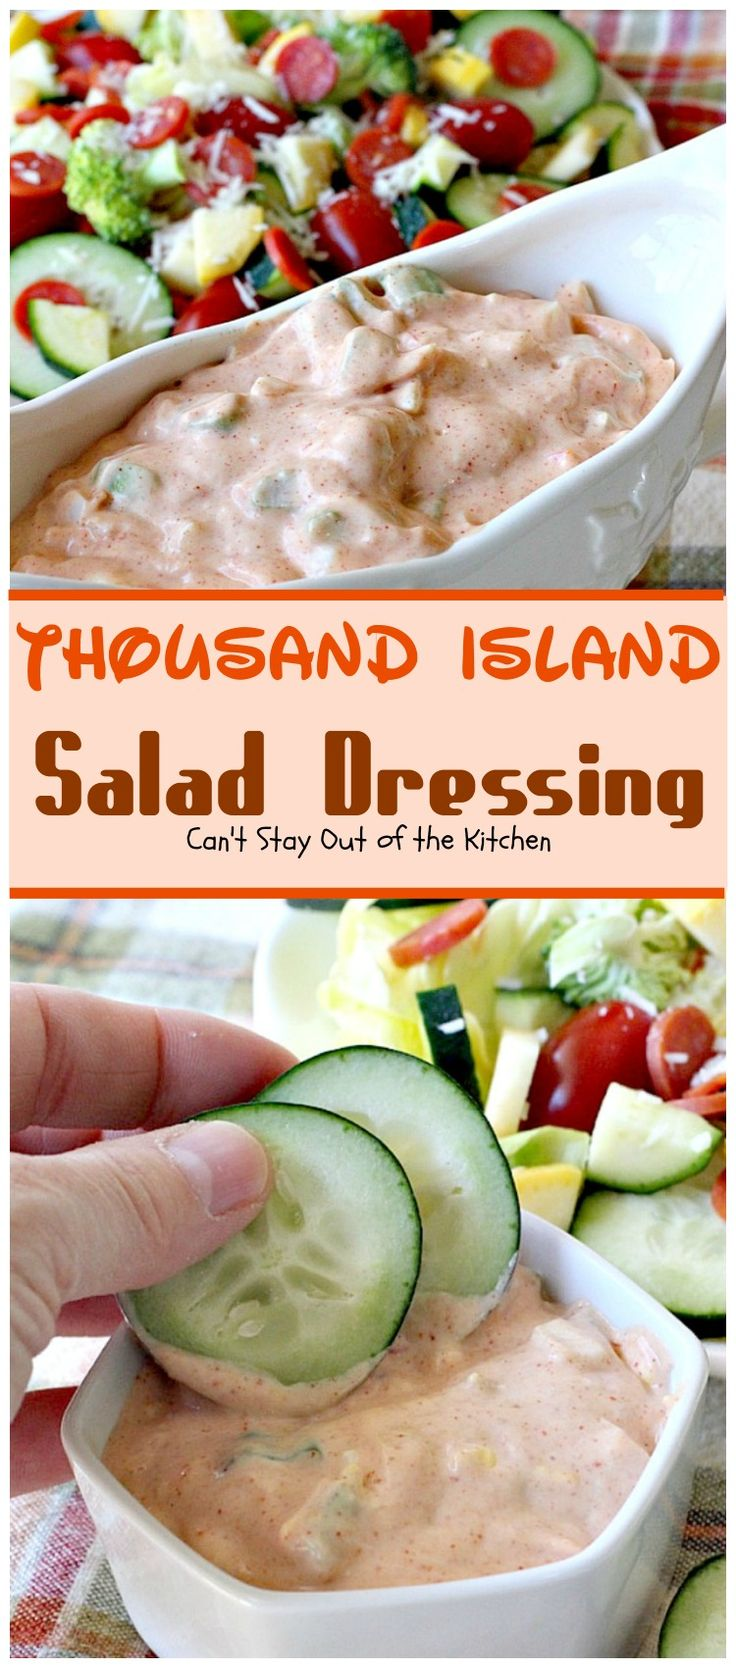 Thousand Island Salad Dressing ~ Fantastic homemade salad dressing that's perfect for any salad... It's great to use as a dip as well.